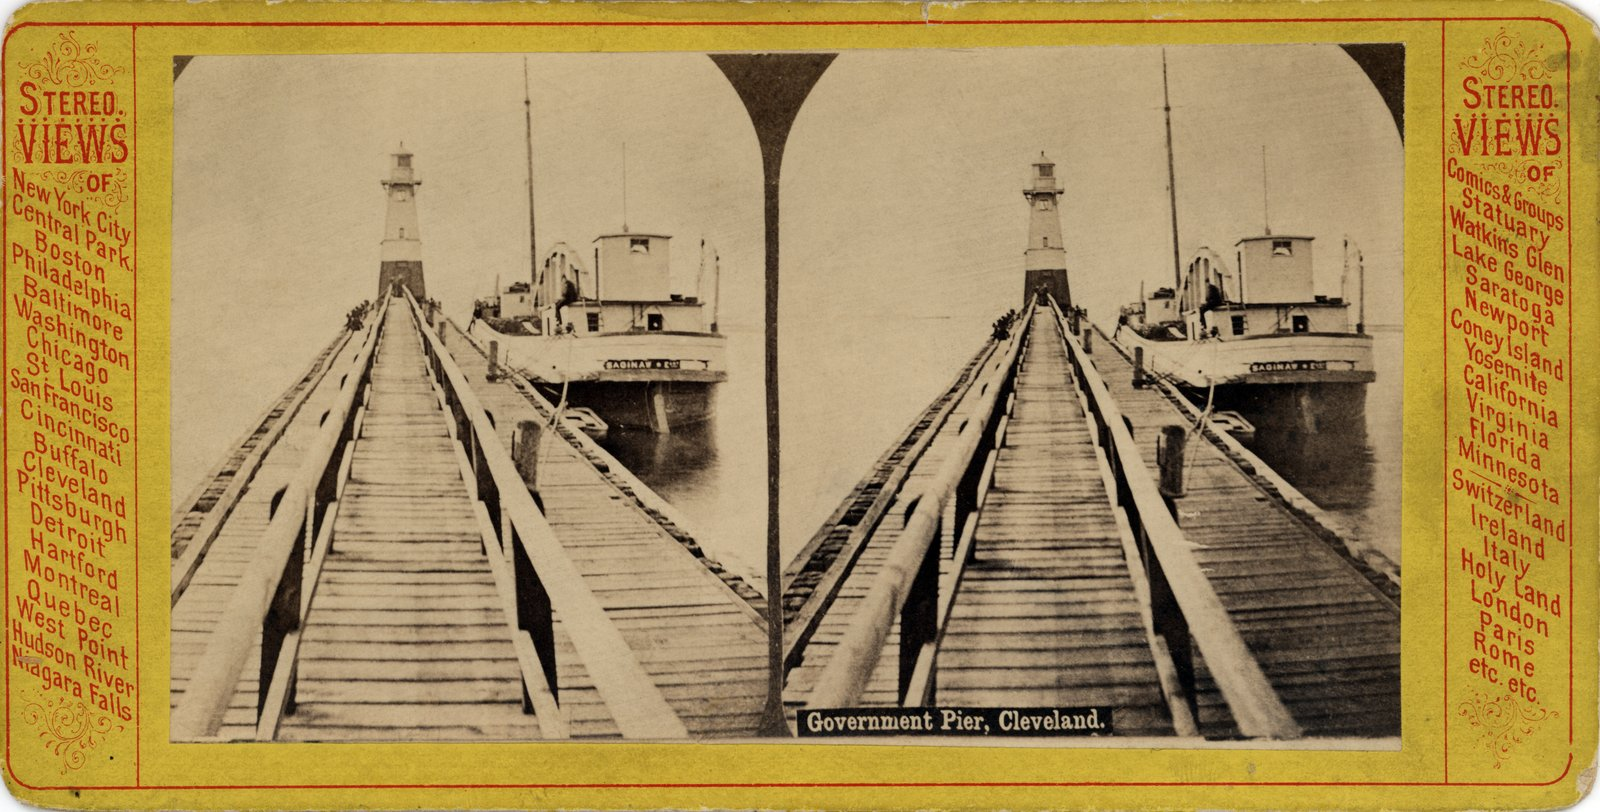 Government Pier, Cleveland